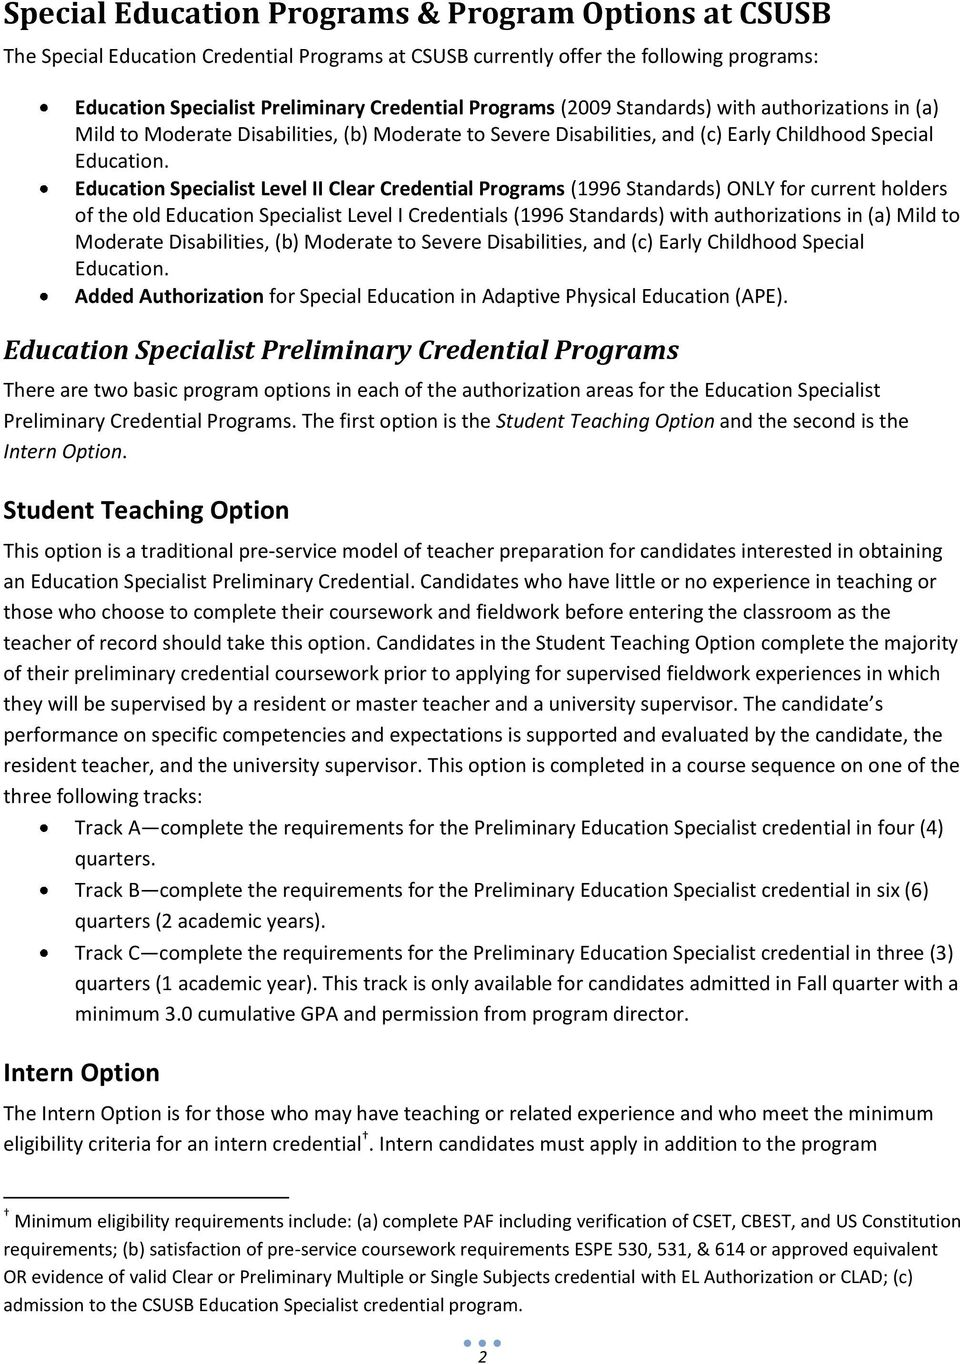 Education Specialist Level II Clear Credential Programs (1996 Standards) ONLY for current holders of the old Education Specialist Level I Credentials (1996 Standards) with authorizations in (a) Mild